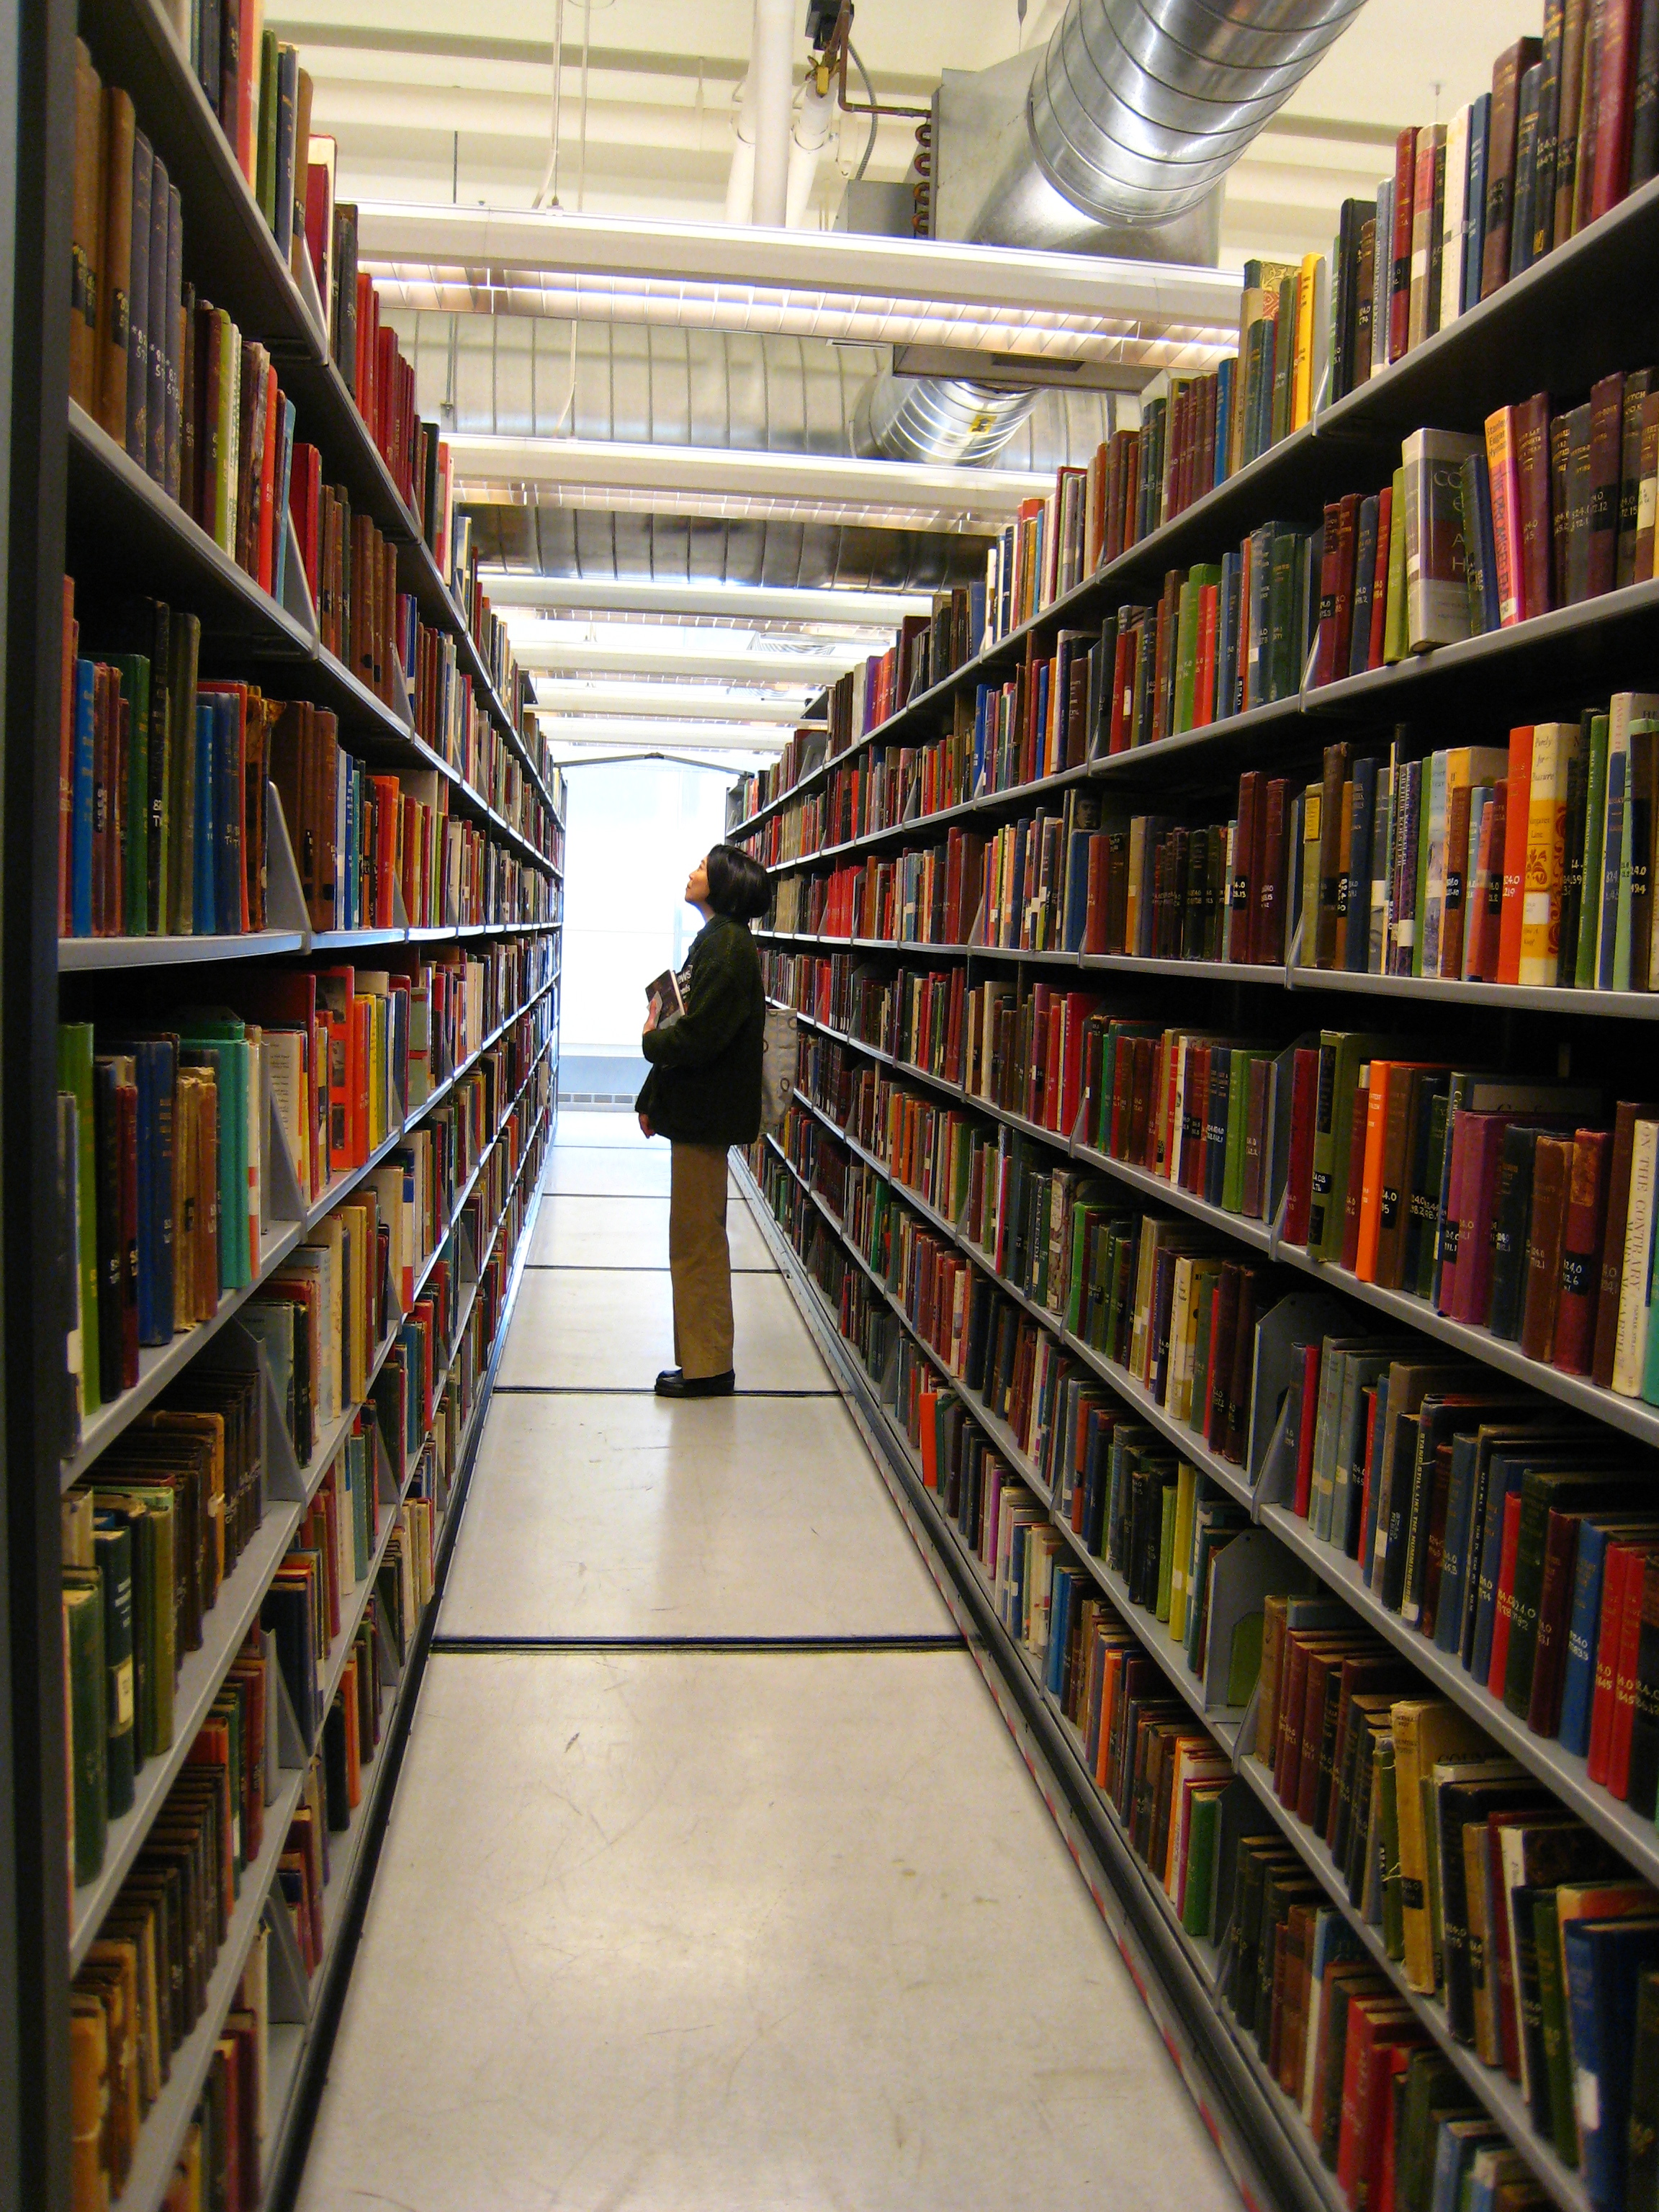 Person standing between shelves of library books